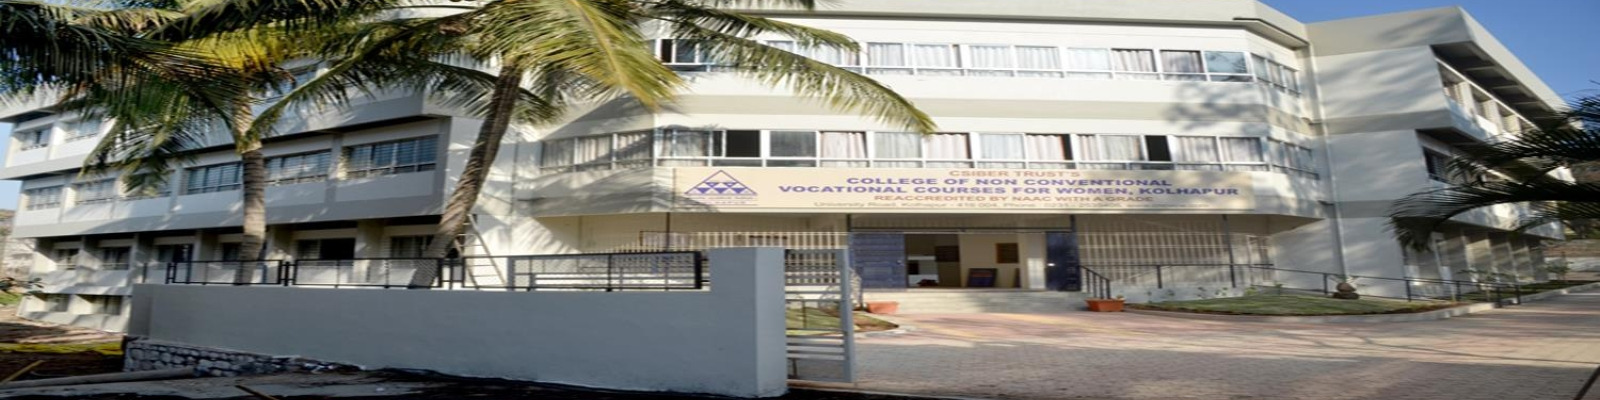 Csiber Trusts College Of Non Conventional Vocatonal Courses For Woman Kolhapur